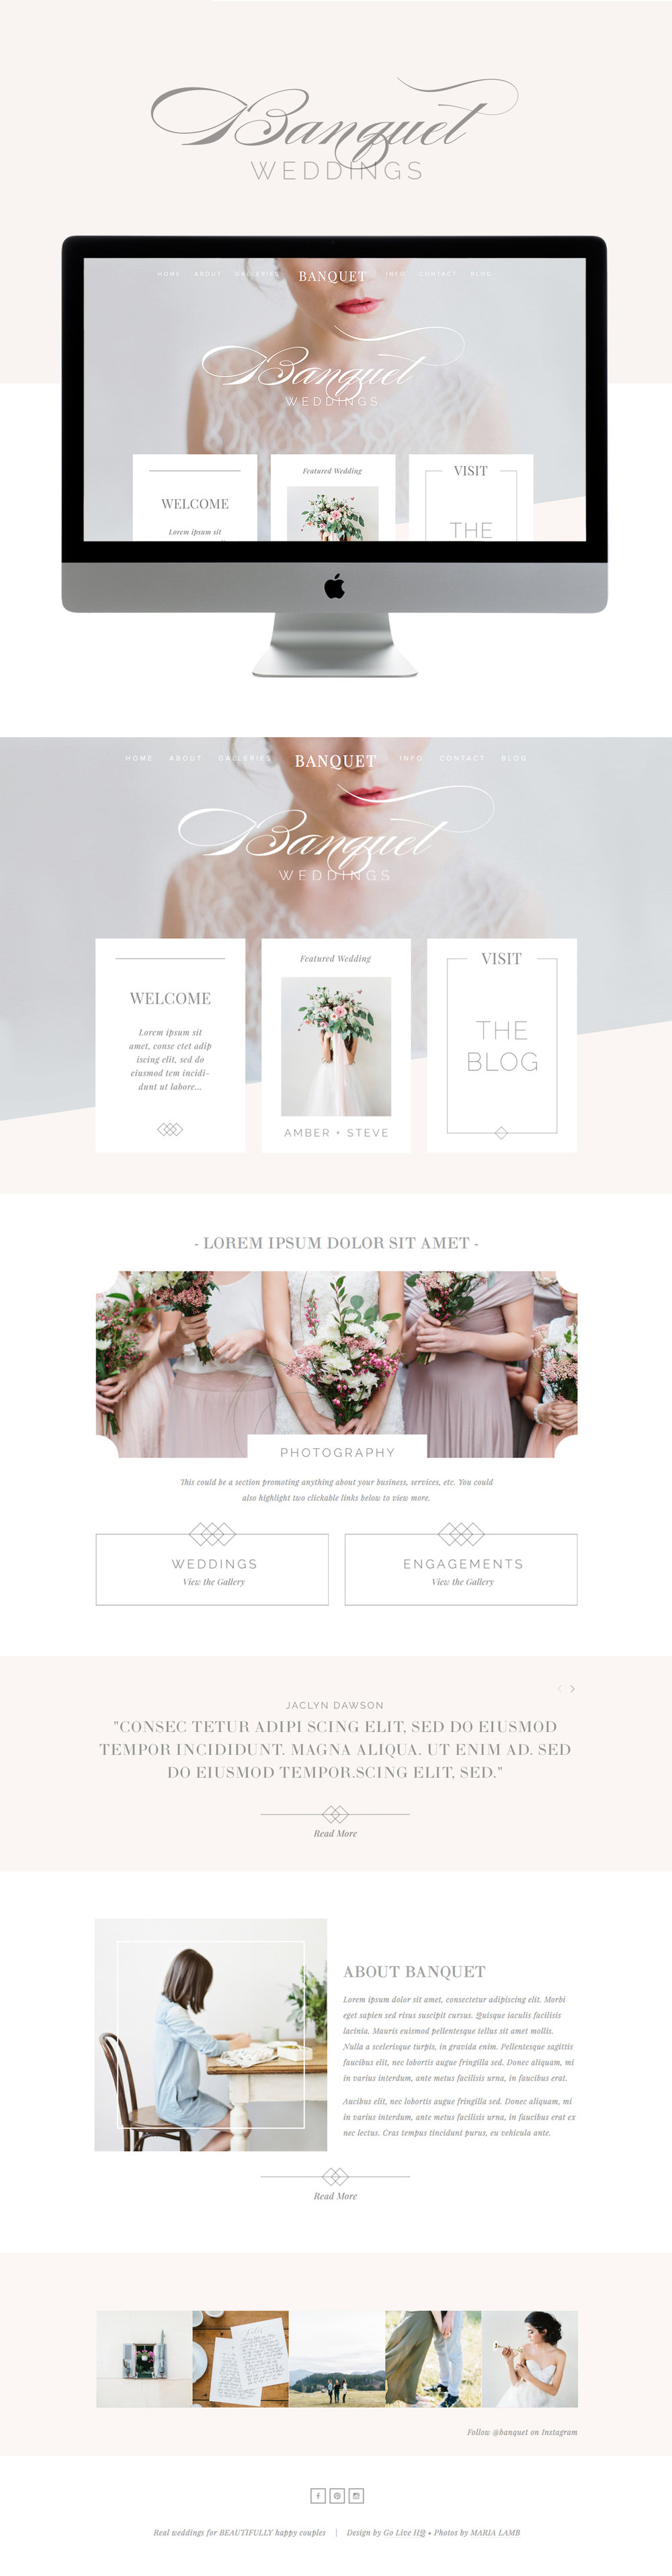 Feminine Squarespace template by Go Live Hq